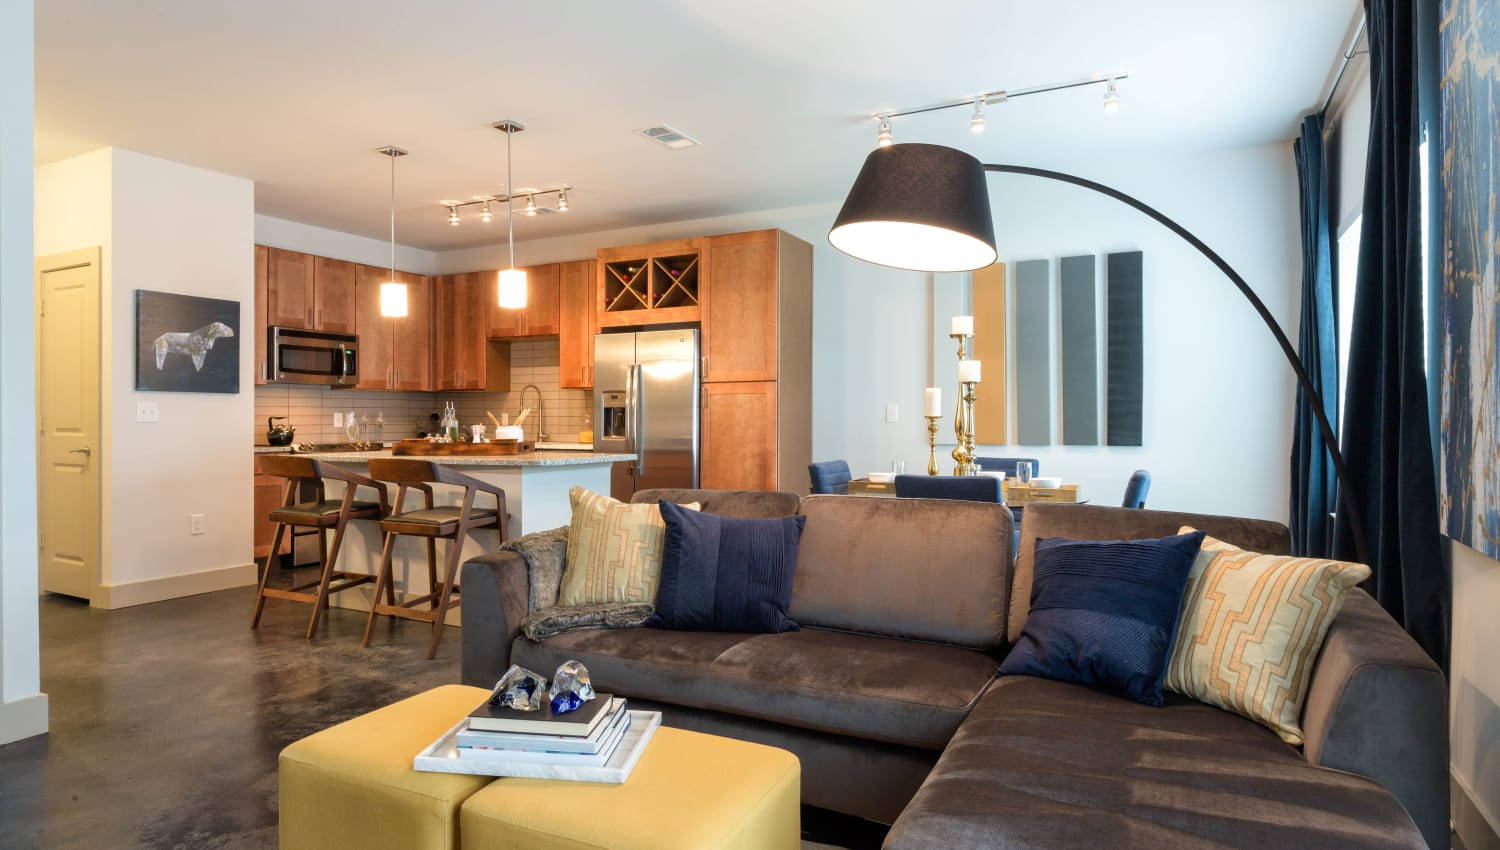 Well-furnished living area with the kitchen in the background of a model apartment at The Davis in Fort Worth, Texas